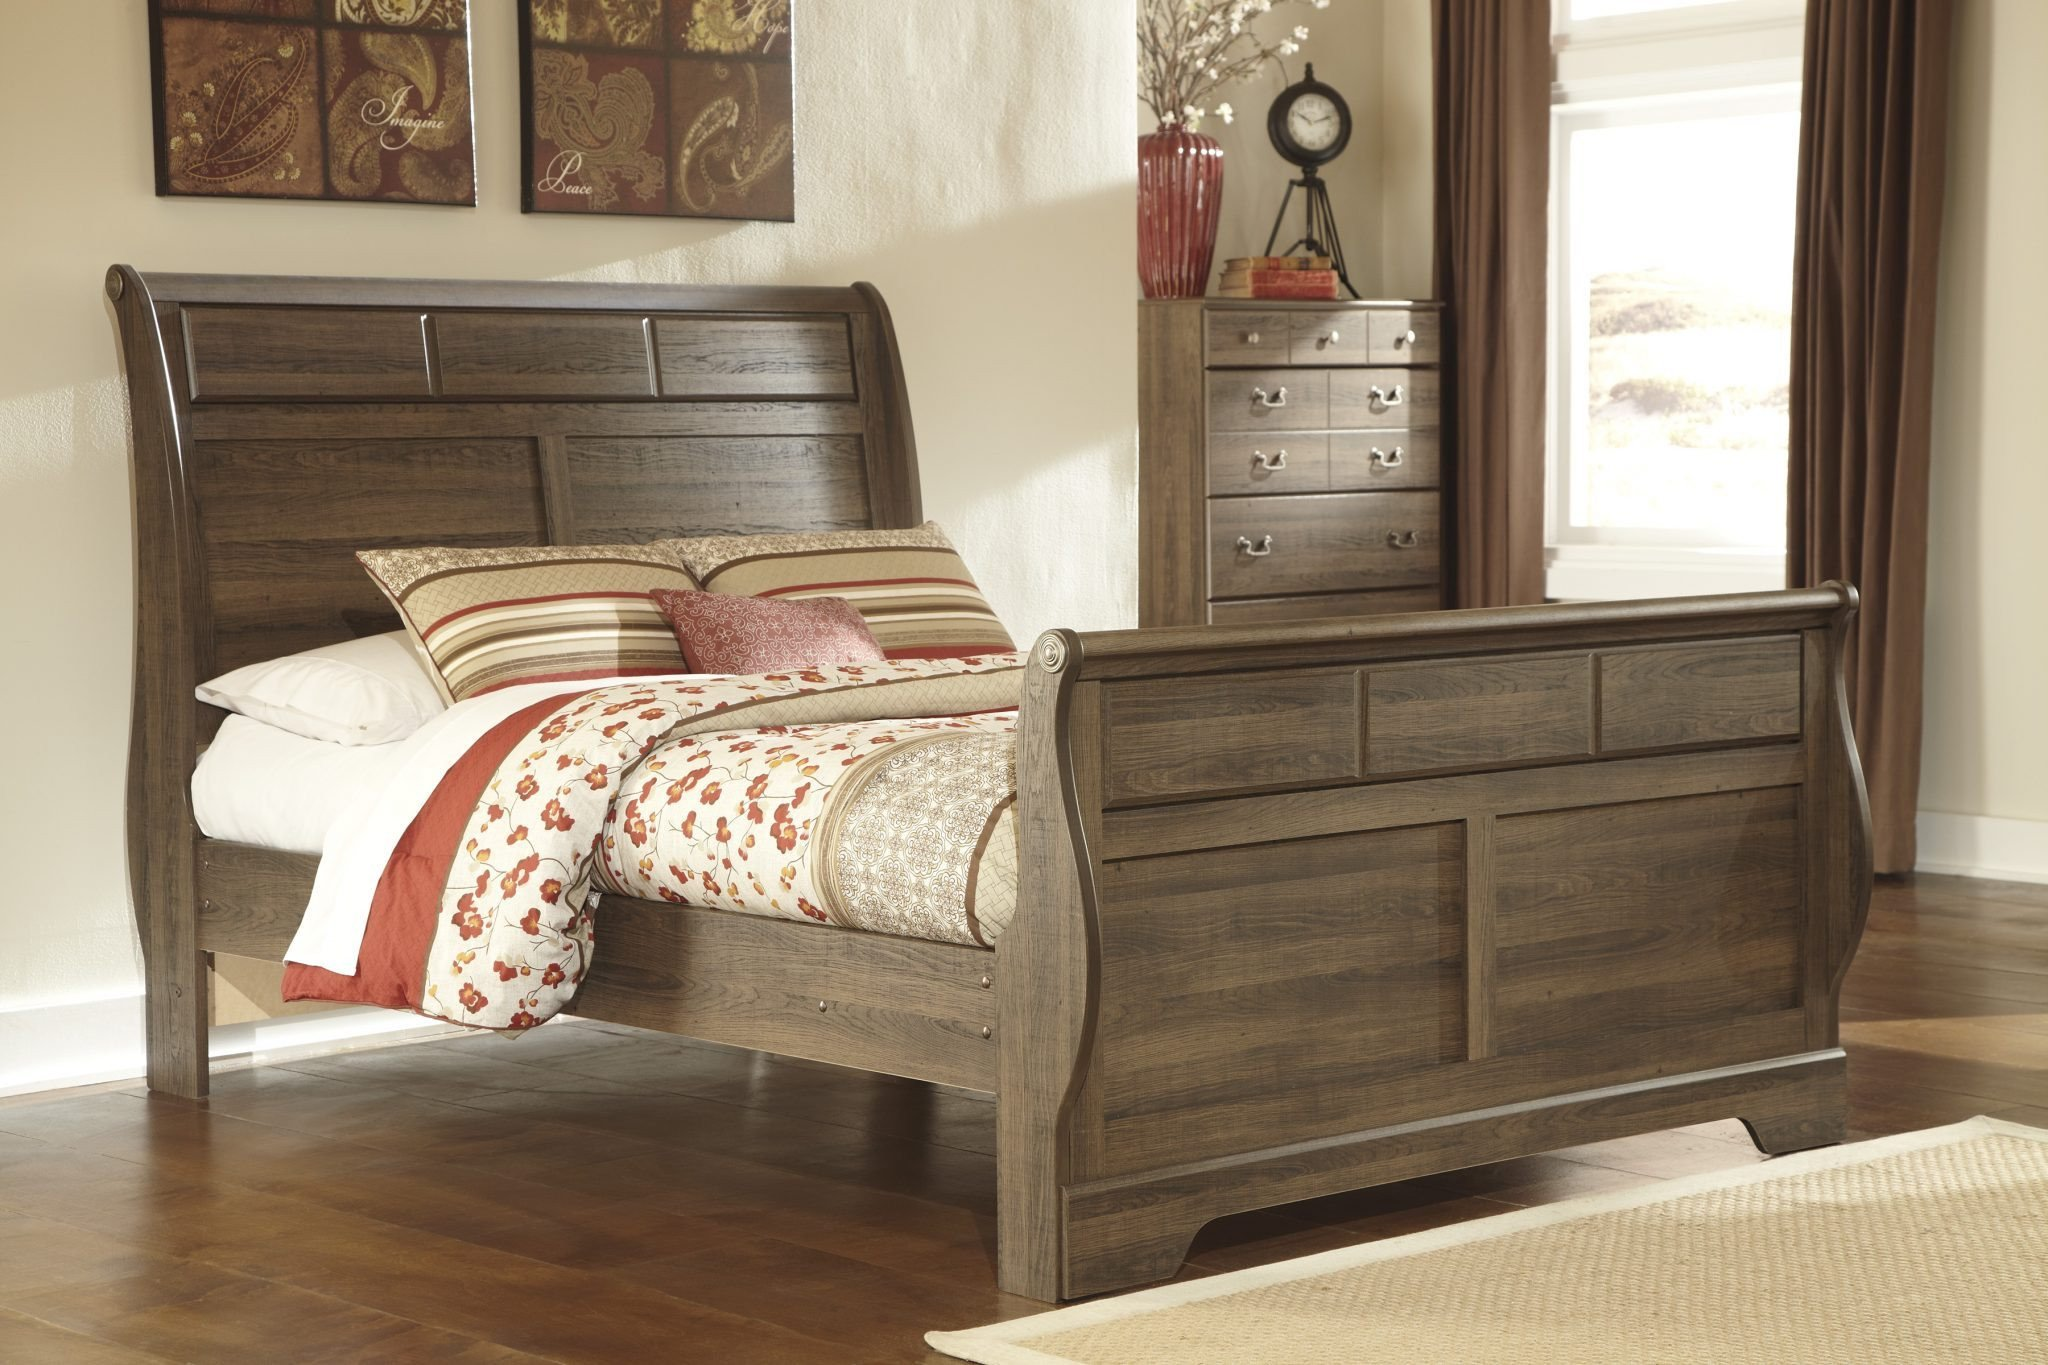 Ashley Porter Bedroom Set Beautiful Bedroom Royal Queen Sleigh Bed Frame with Elegant Creative